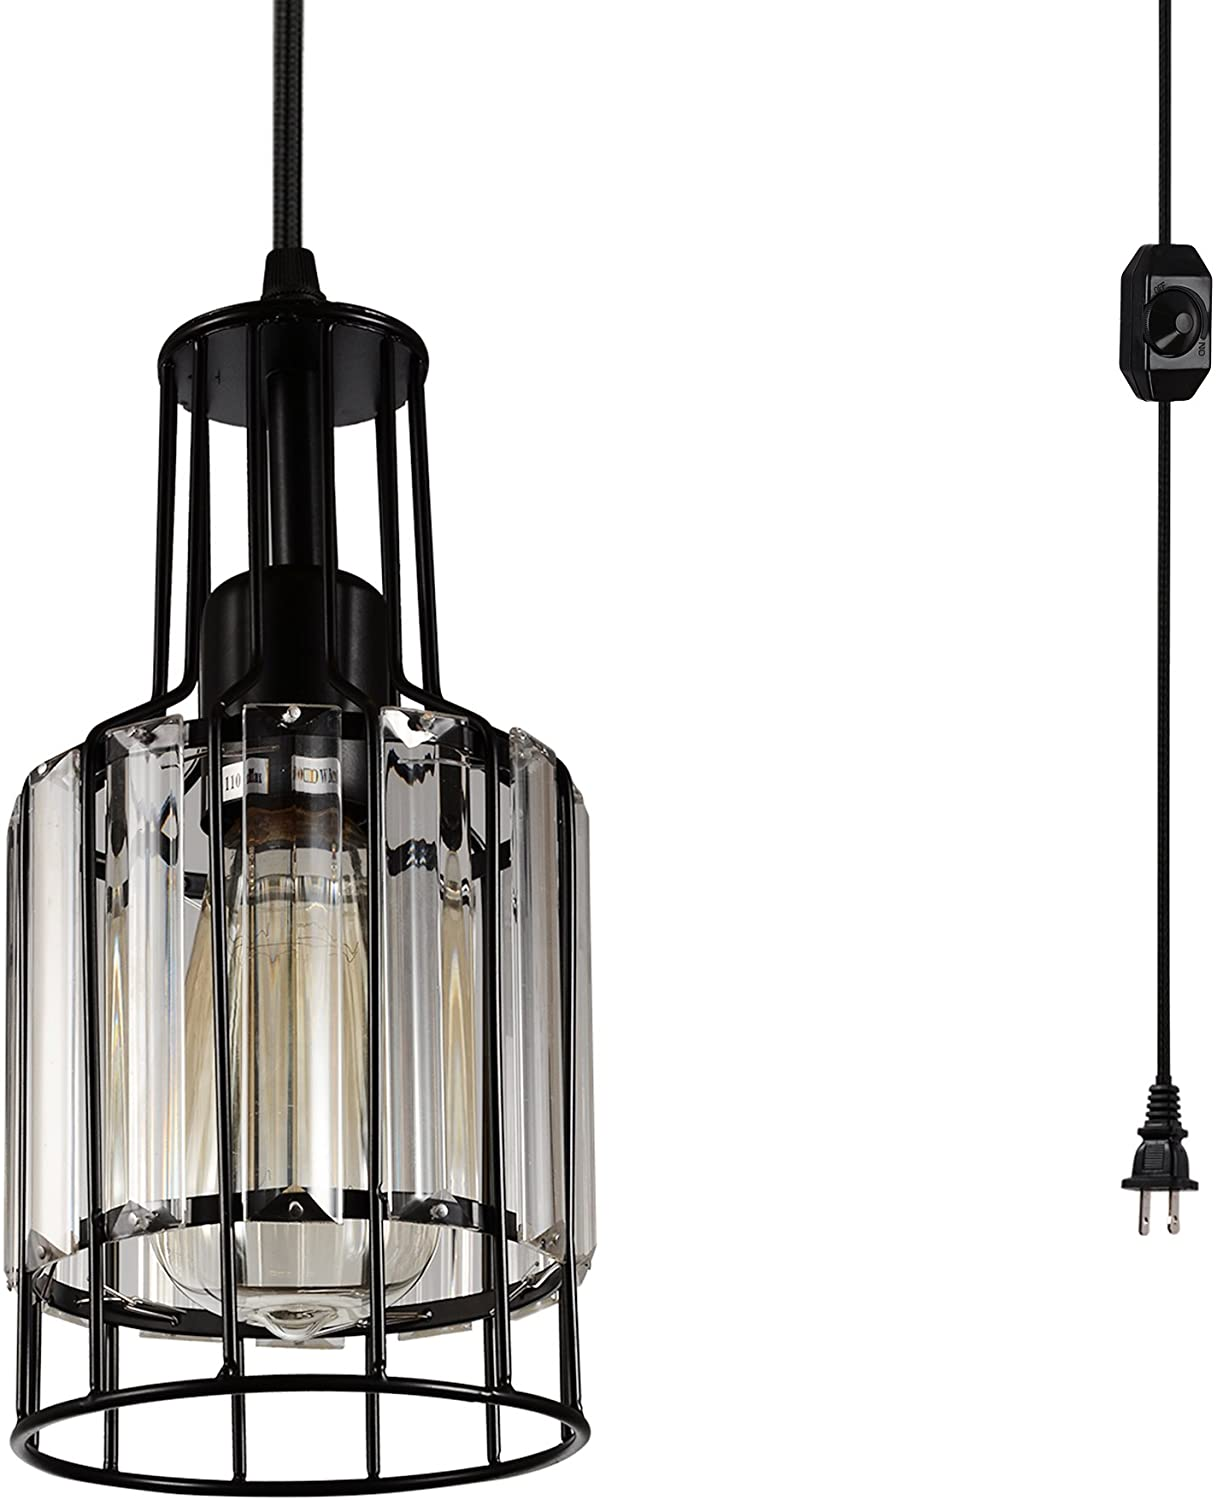 Creatgeek Plug in Industrial Pendant Light Fixture with 16.4'(Ft)Cord and in-Line On/Off Dimmer Switch, Unique Swag Hanging Crystal Lamp for Bar, Night Stand, Kitchen Island, Dining Room, Entryway